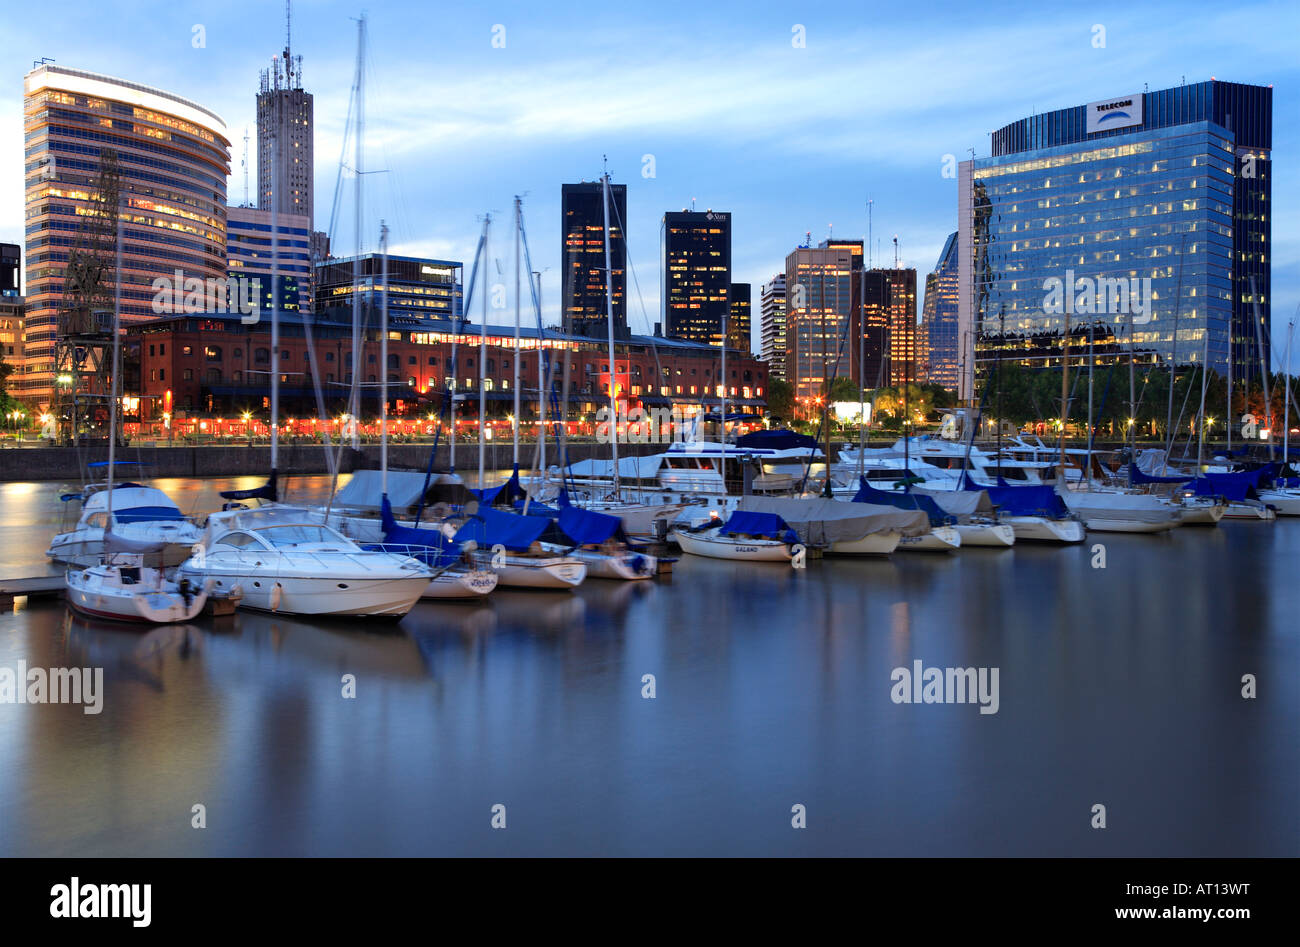 Puerto Madero yacht  club view at dusk with water reflections and lights,Buenos Aires, Argentina - Stock Image